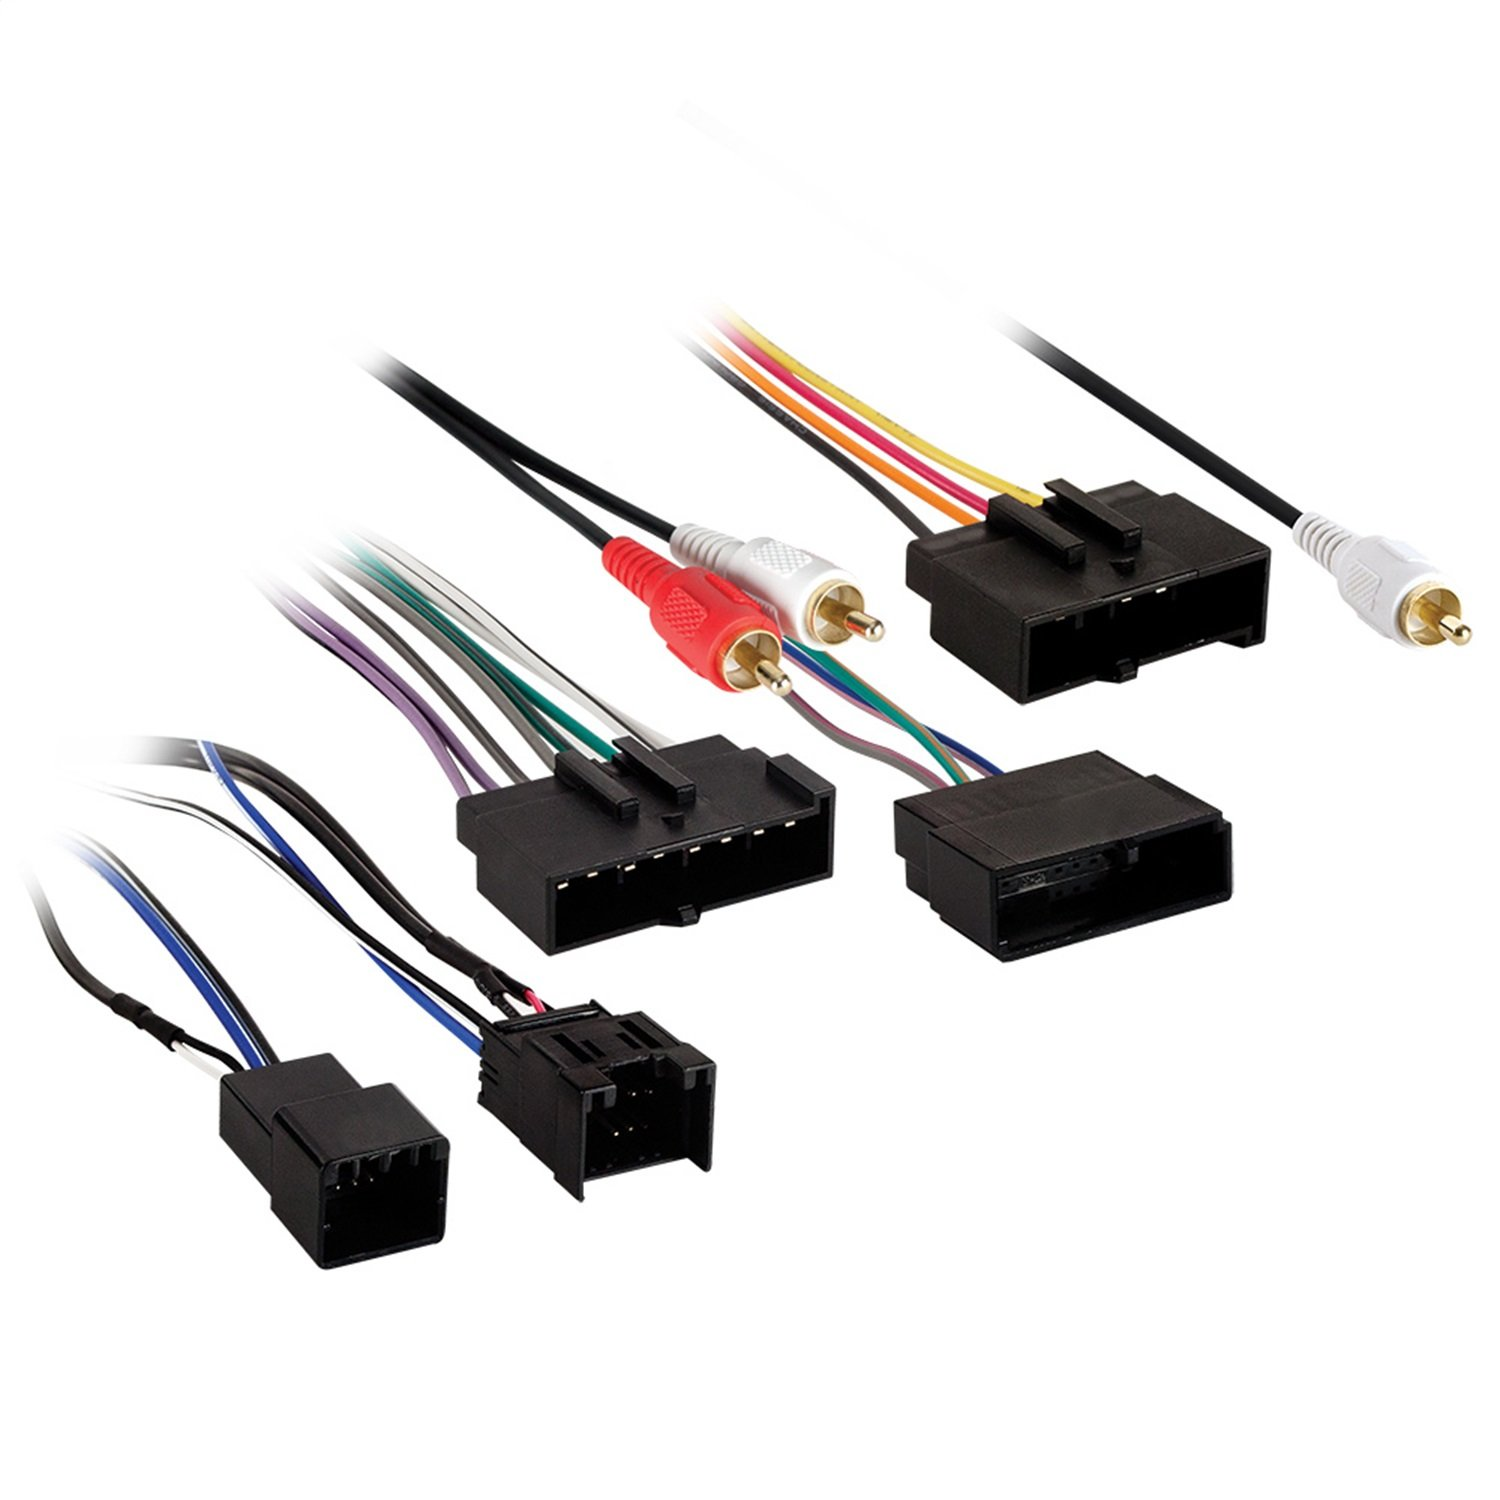 Metra Electronics 70 1776 Radio Harness For Models W Ford Wiring Kits Male Plugs Factory Nav And O Thx In To Car At Location Automotive